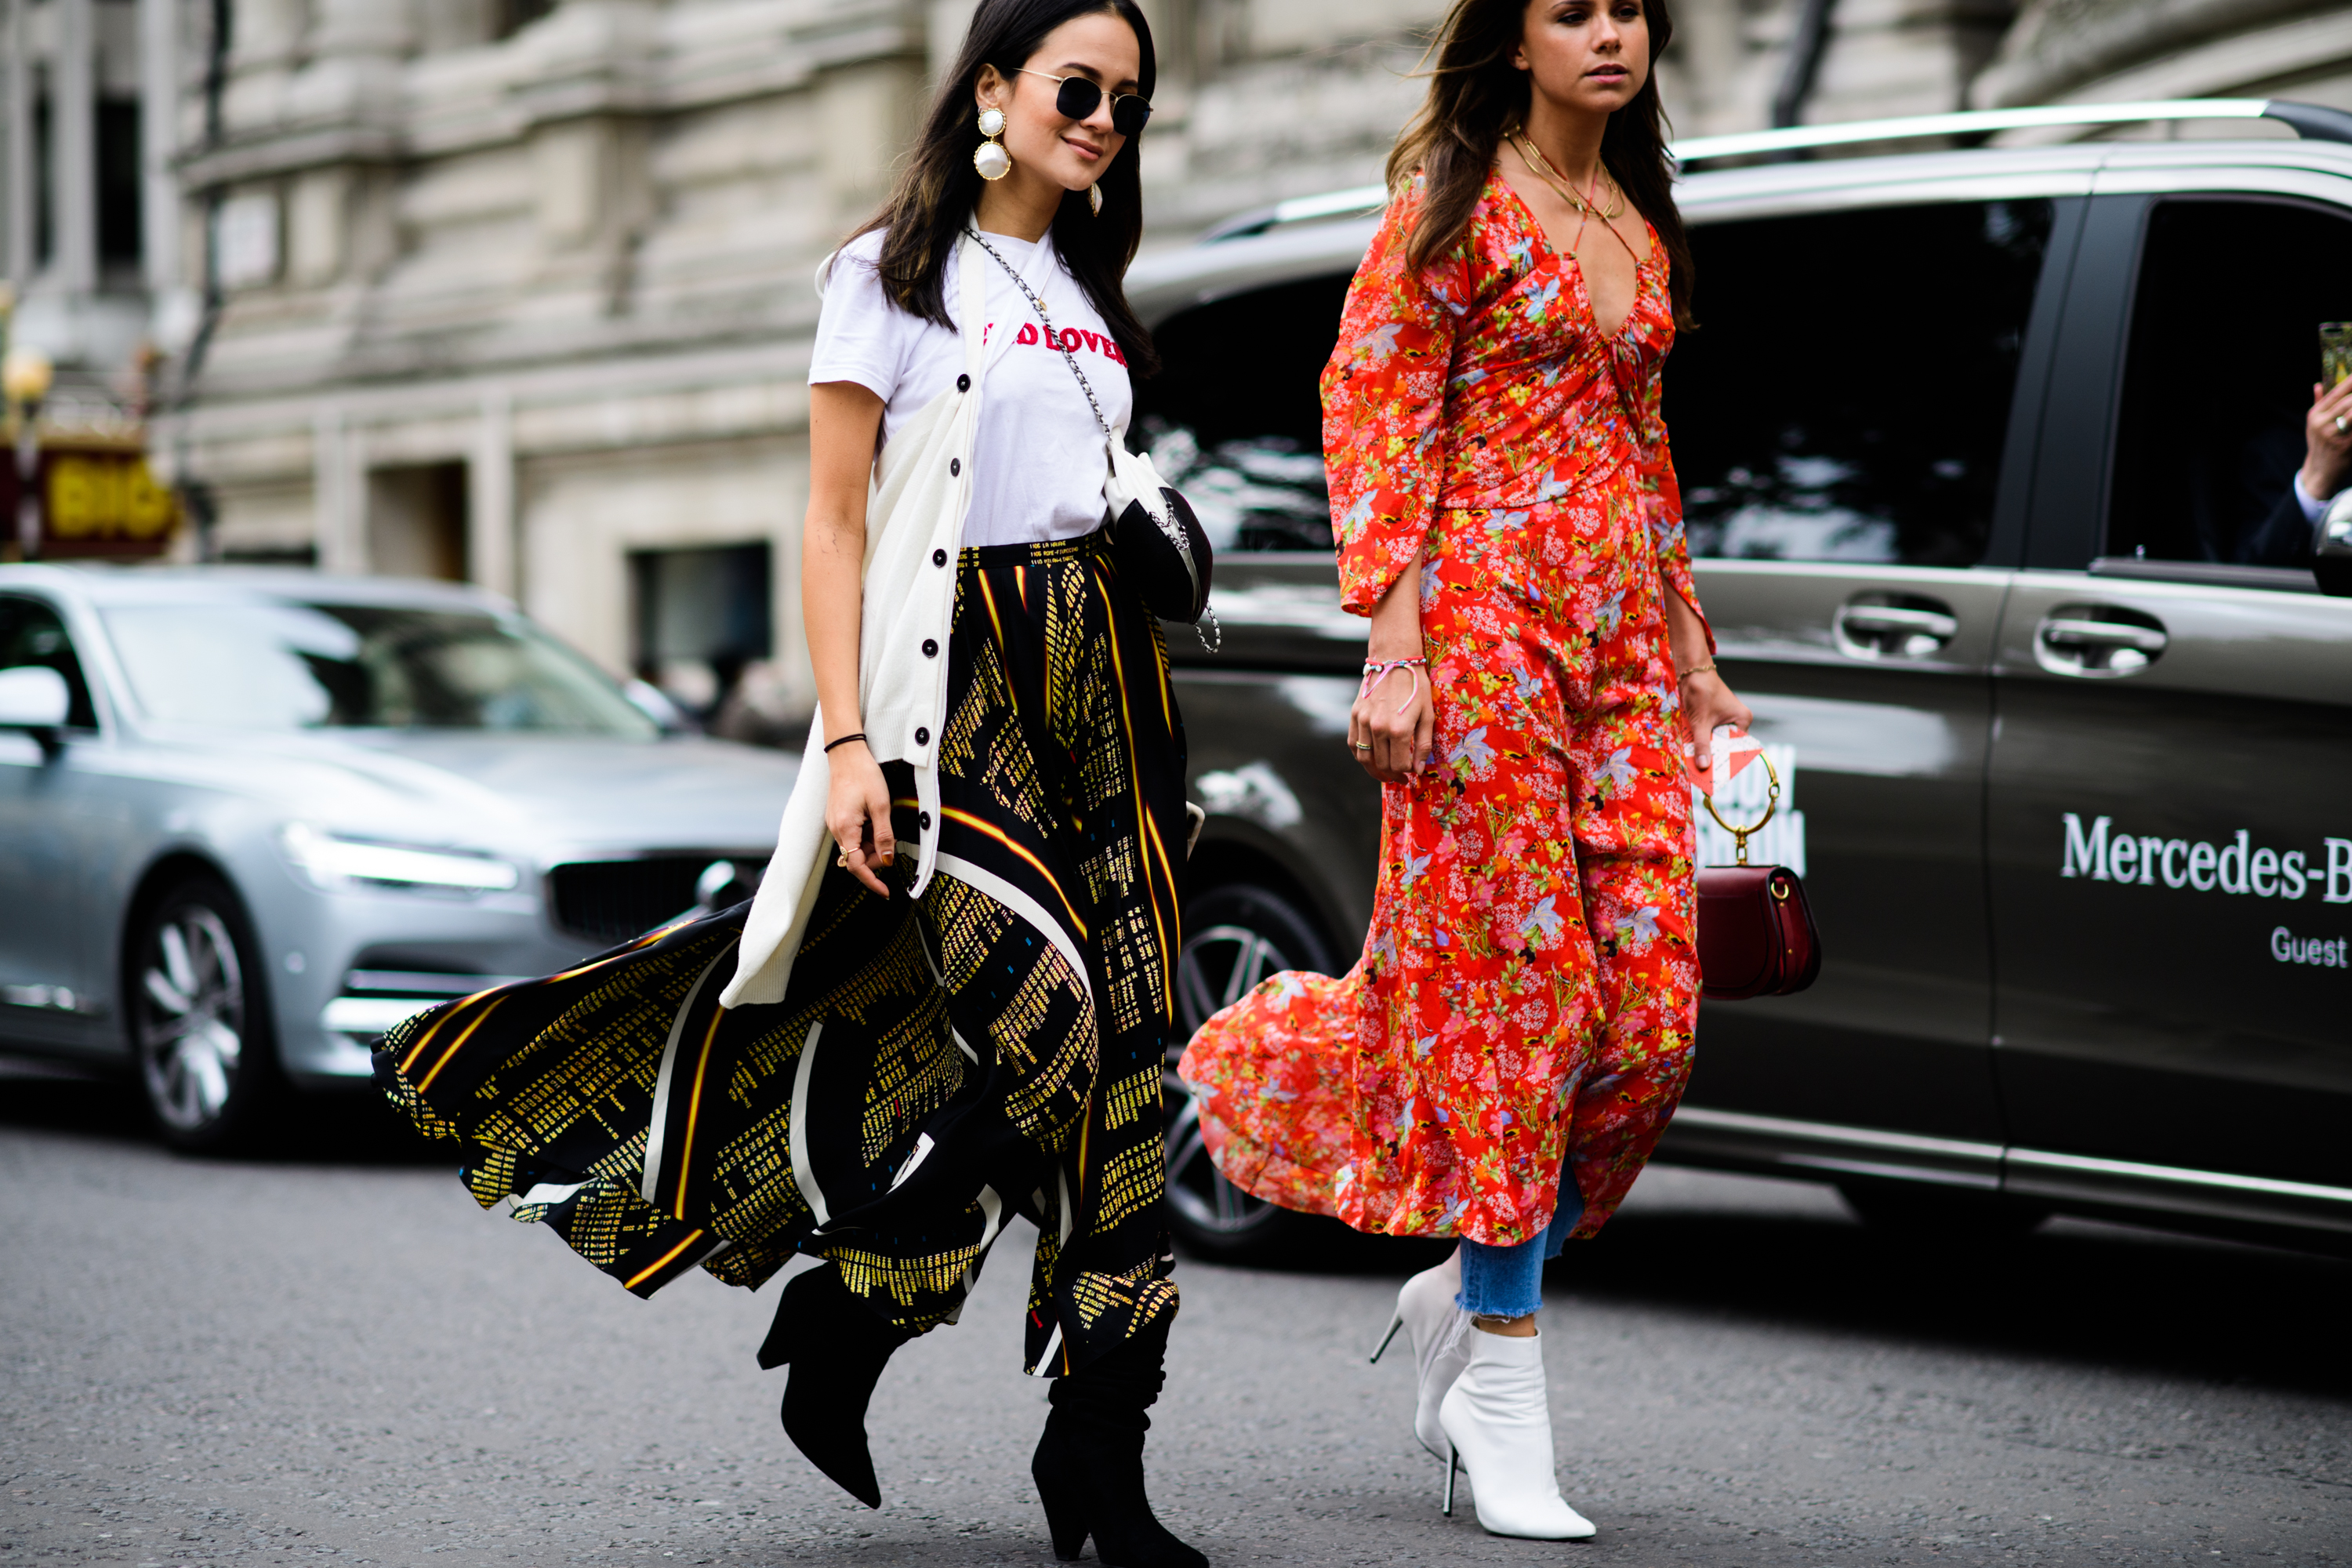 london-lfw-street-style-ss18-day-2-tyler-joe-007-1505754166